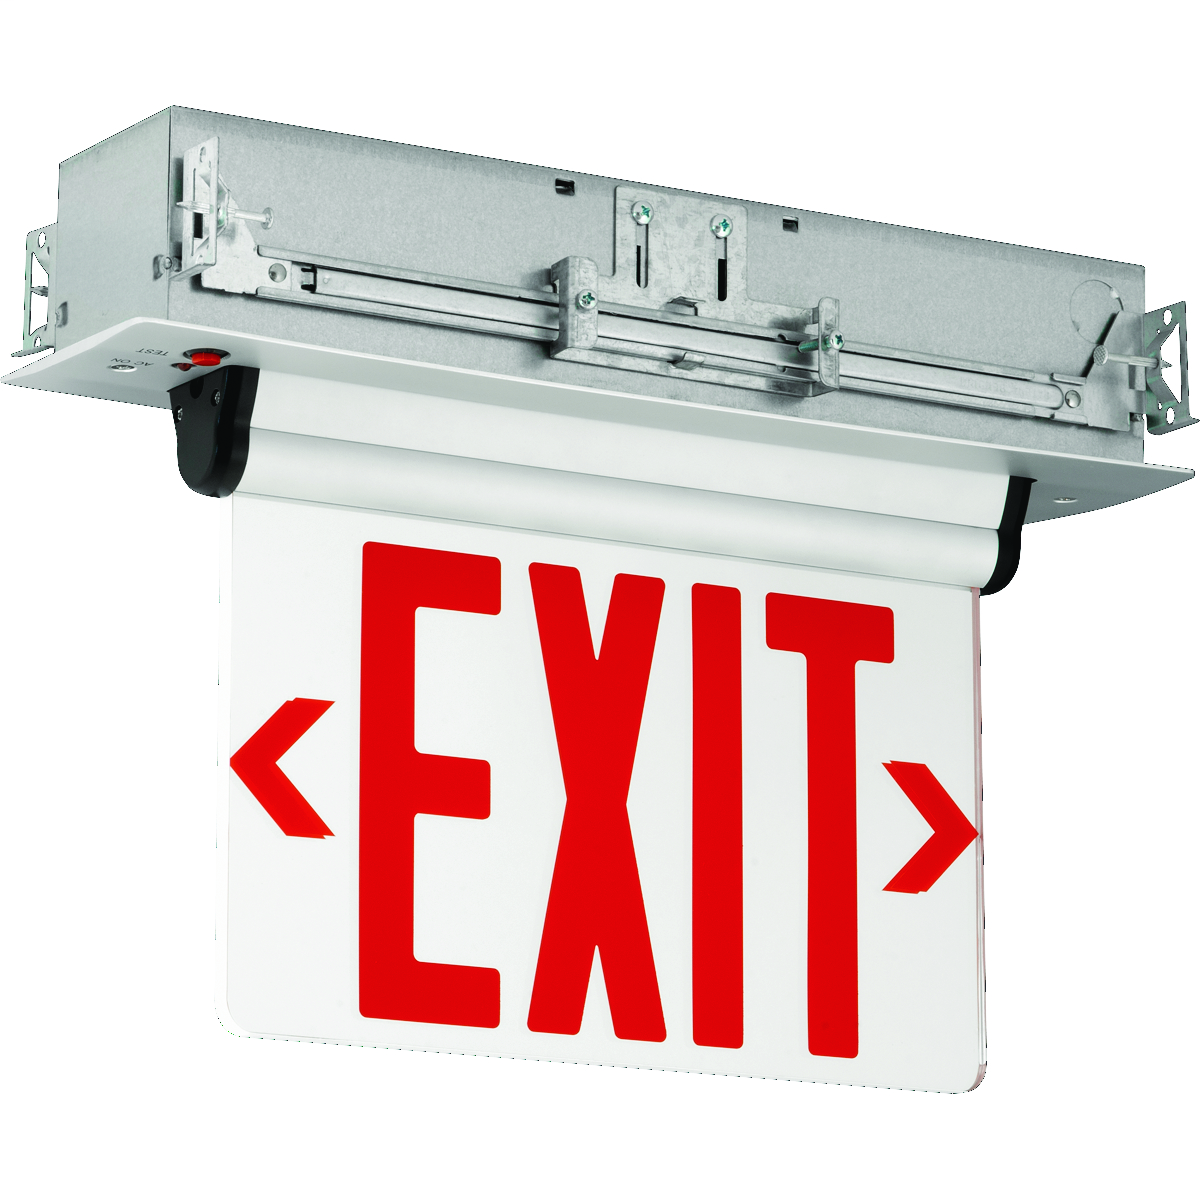 Red Letters, Single Face, Surface Mount. Maintenance free, sealed nickel cadmium battery. Field installed directional arrow indicators with template.